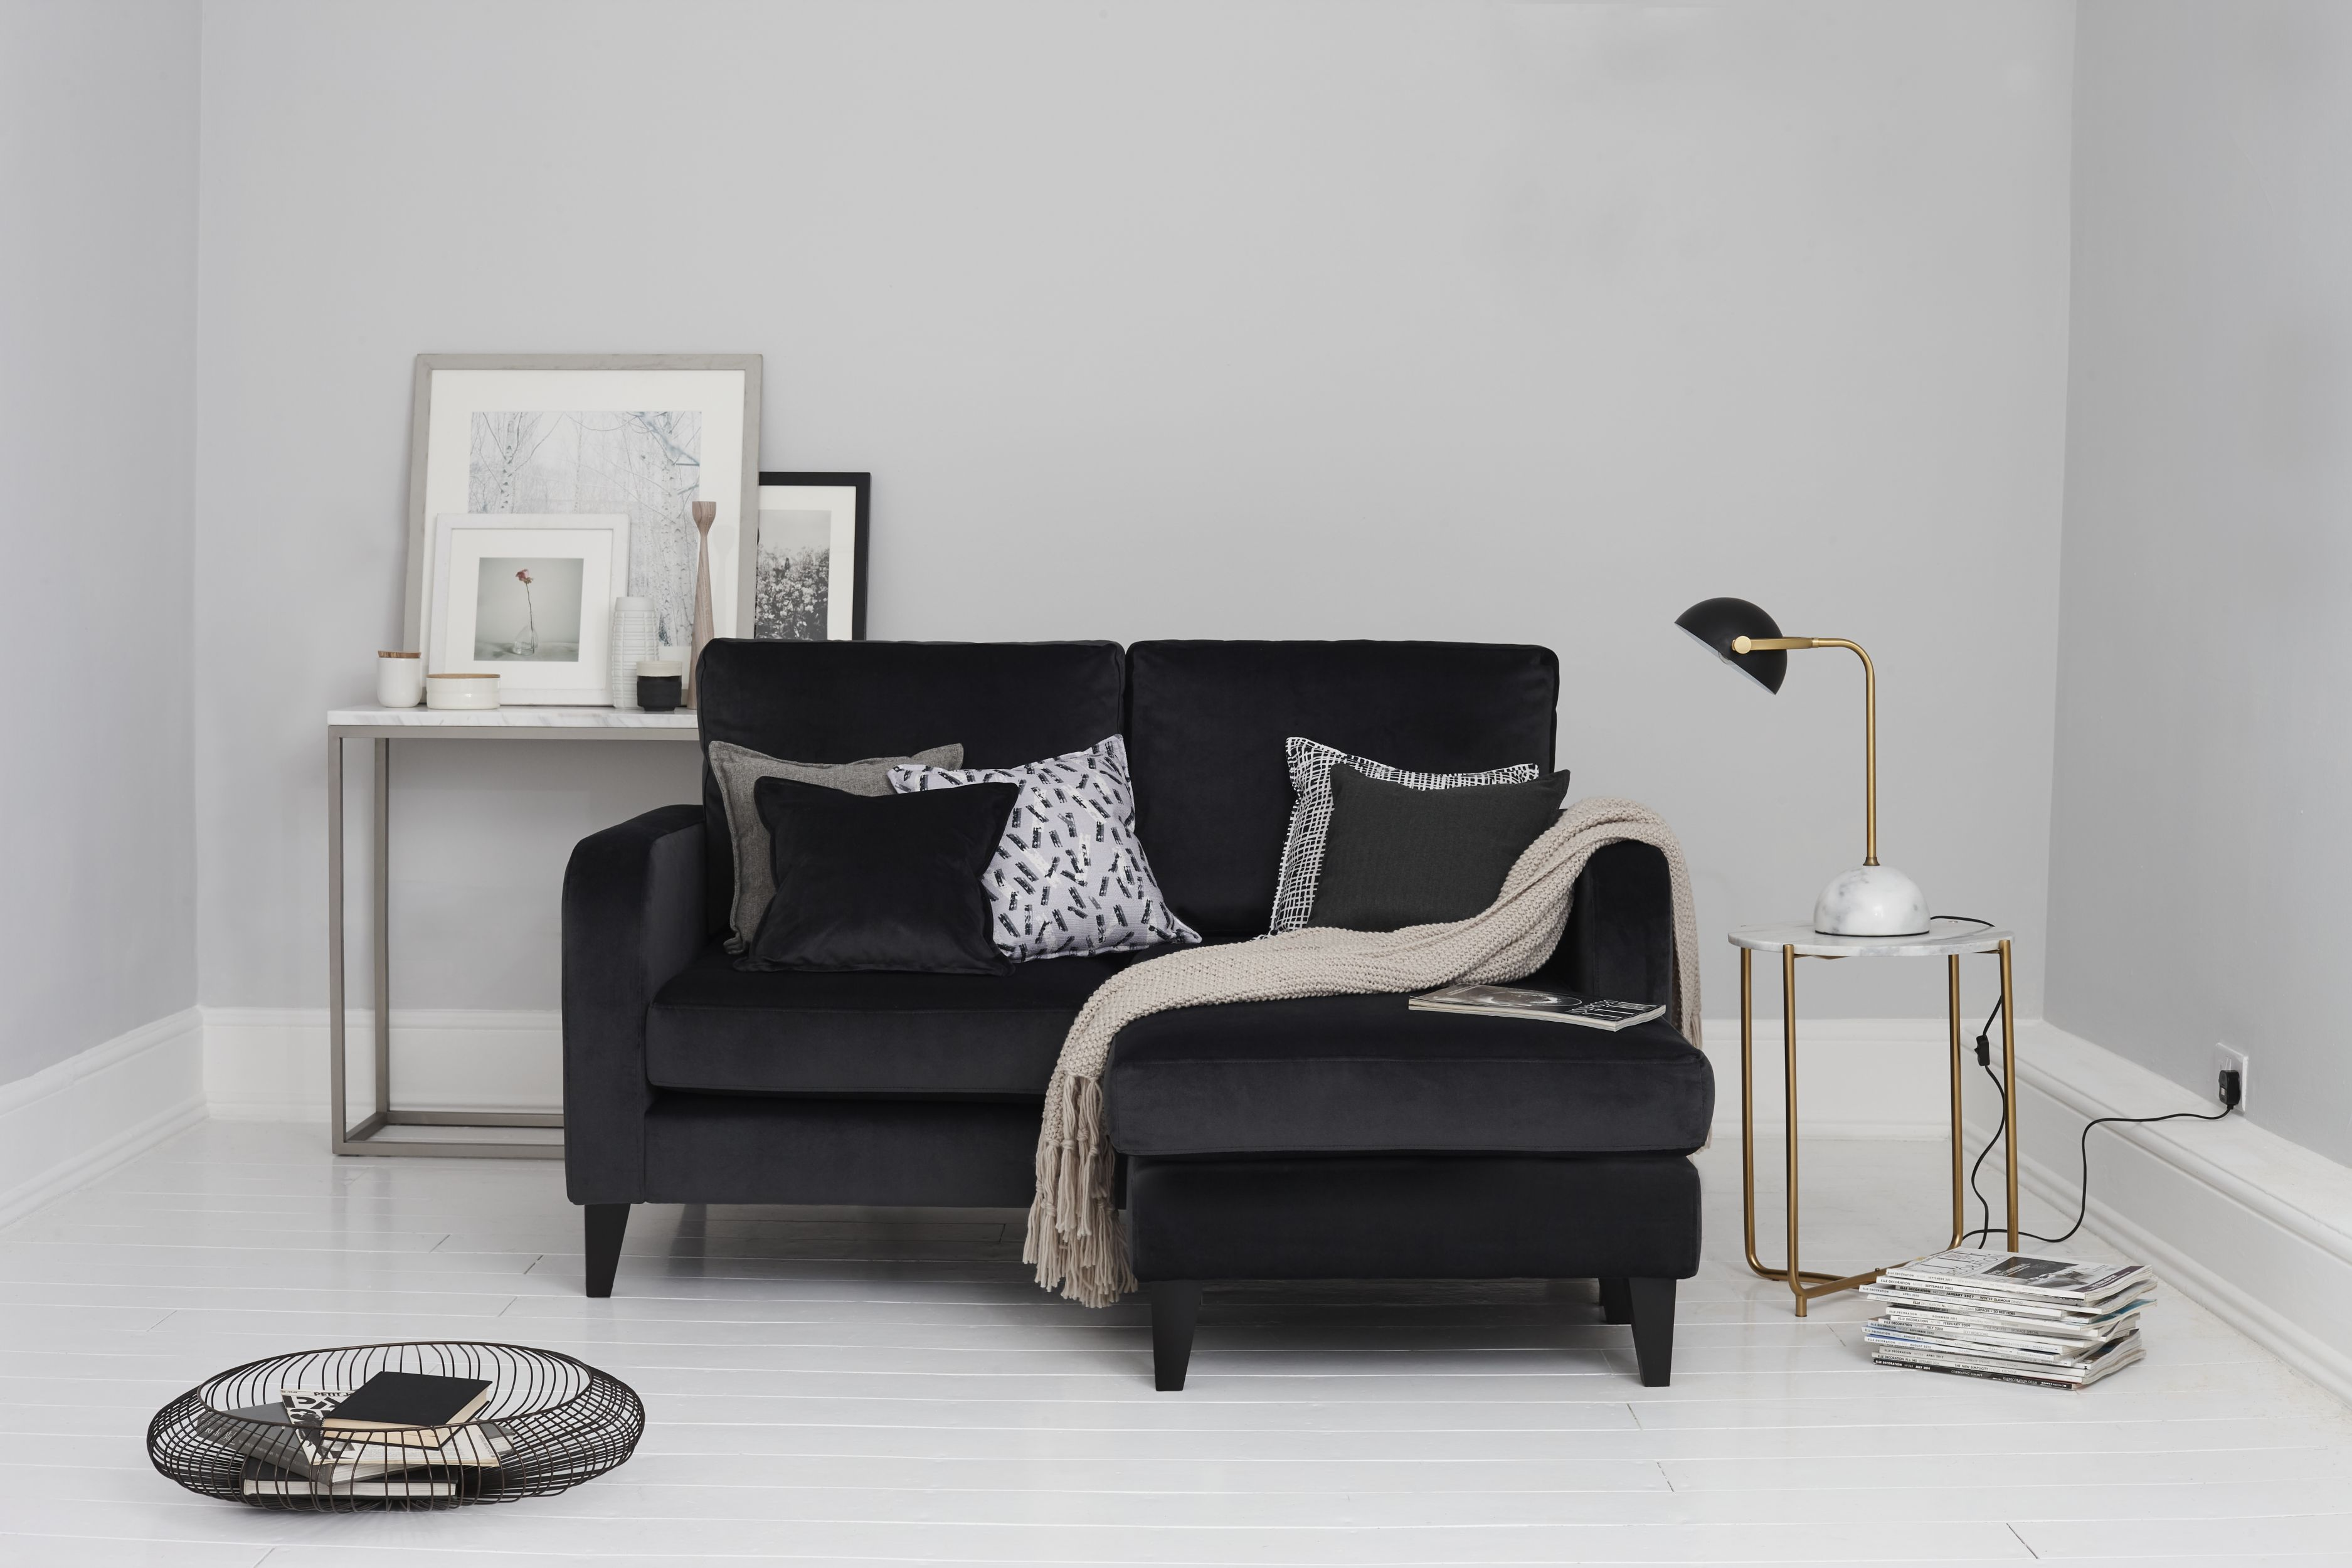 Truth large lounger sofa, £699, from the Capsule collection designed for small spaces, DFS (DFS/PA)